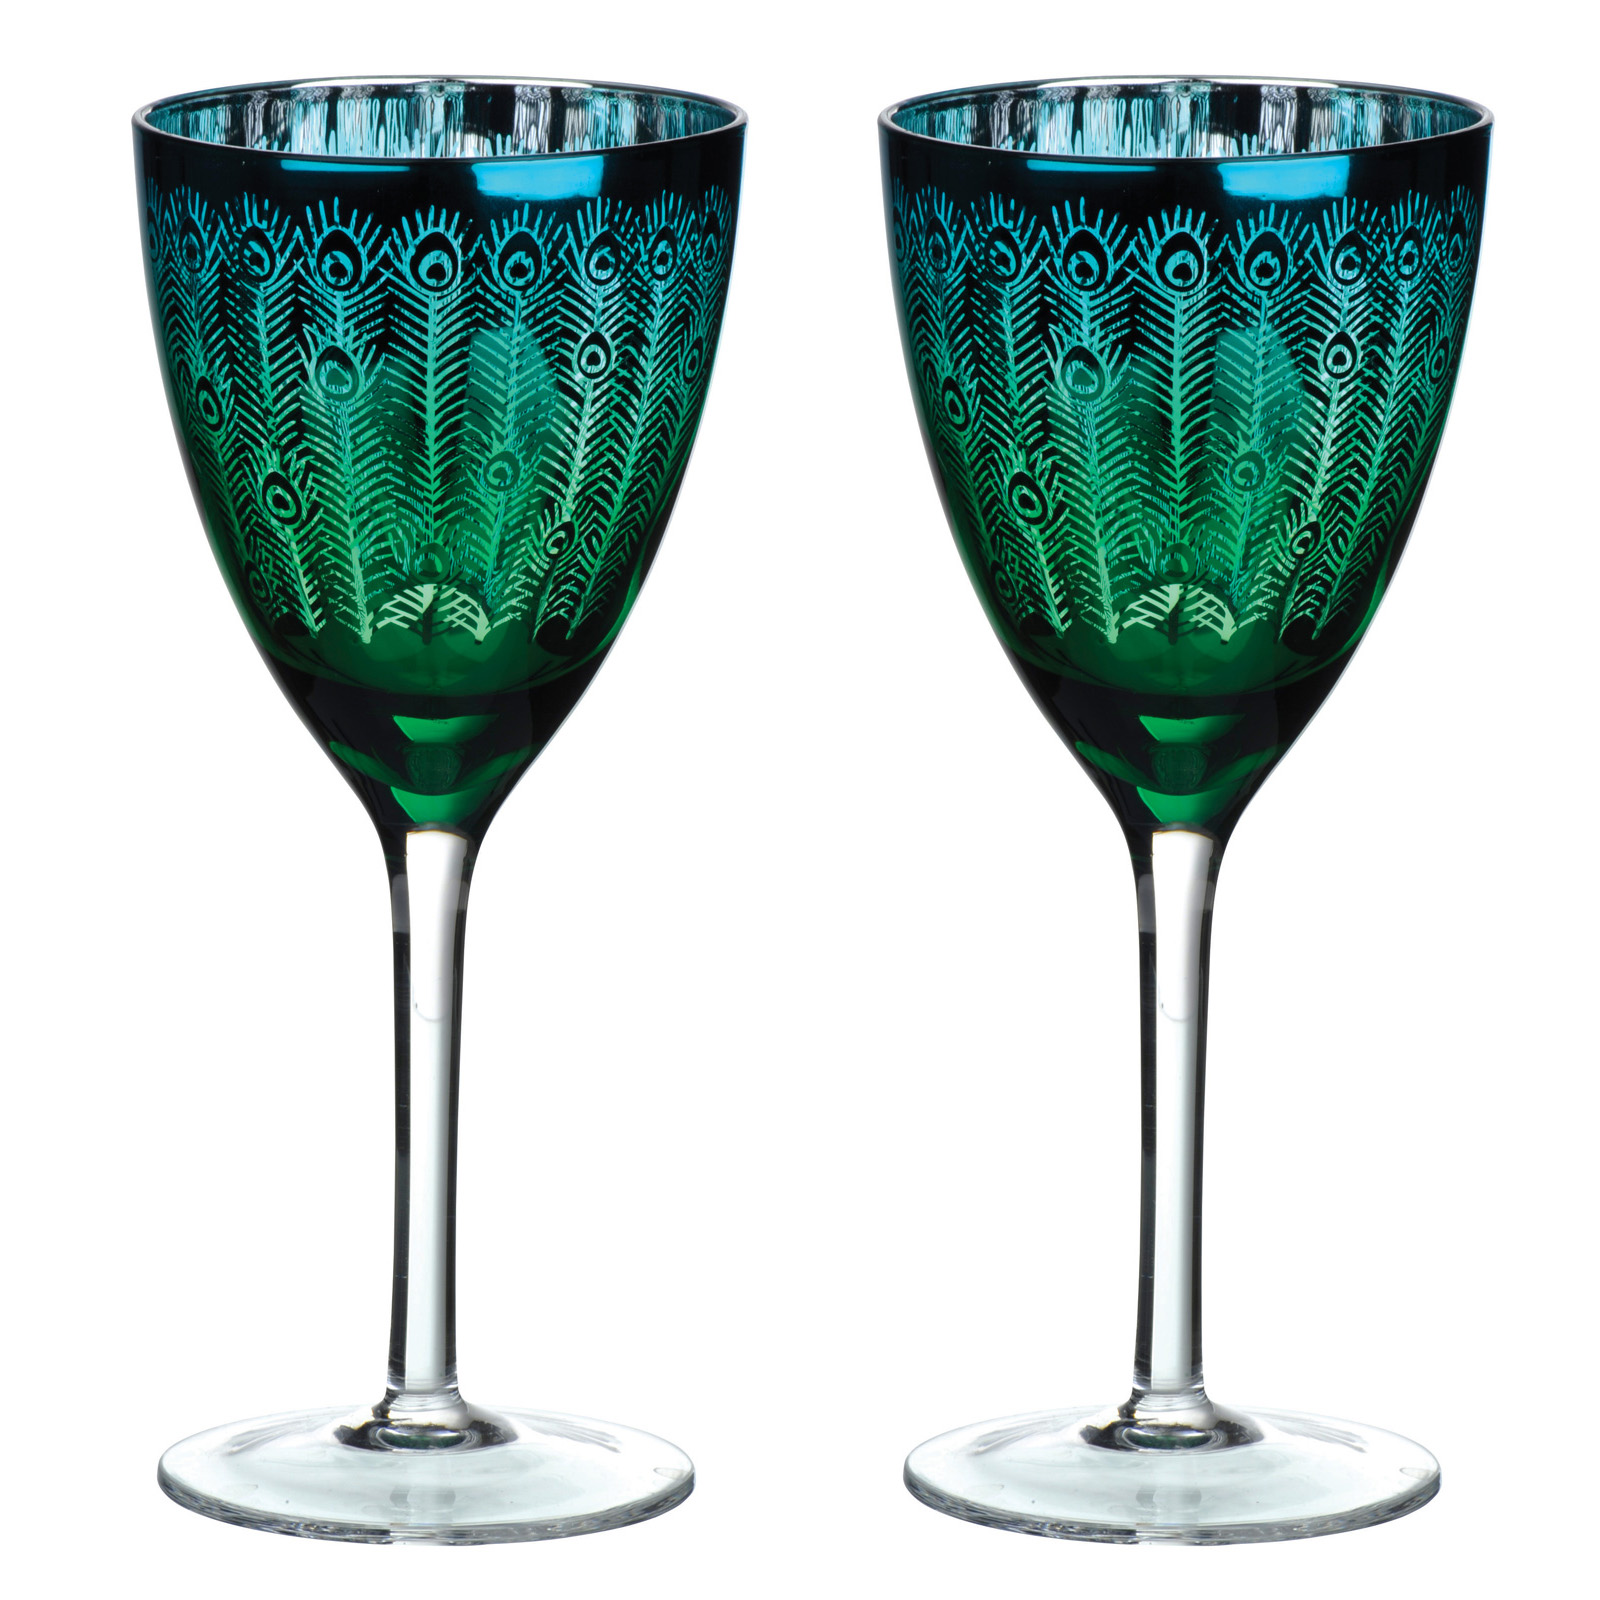 Set of 2 Peacock Wine glasses by Artland